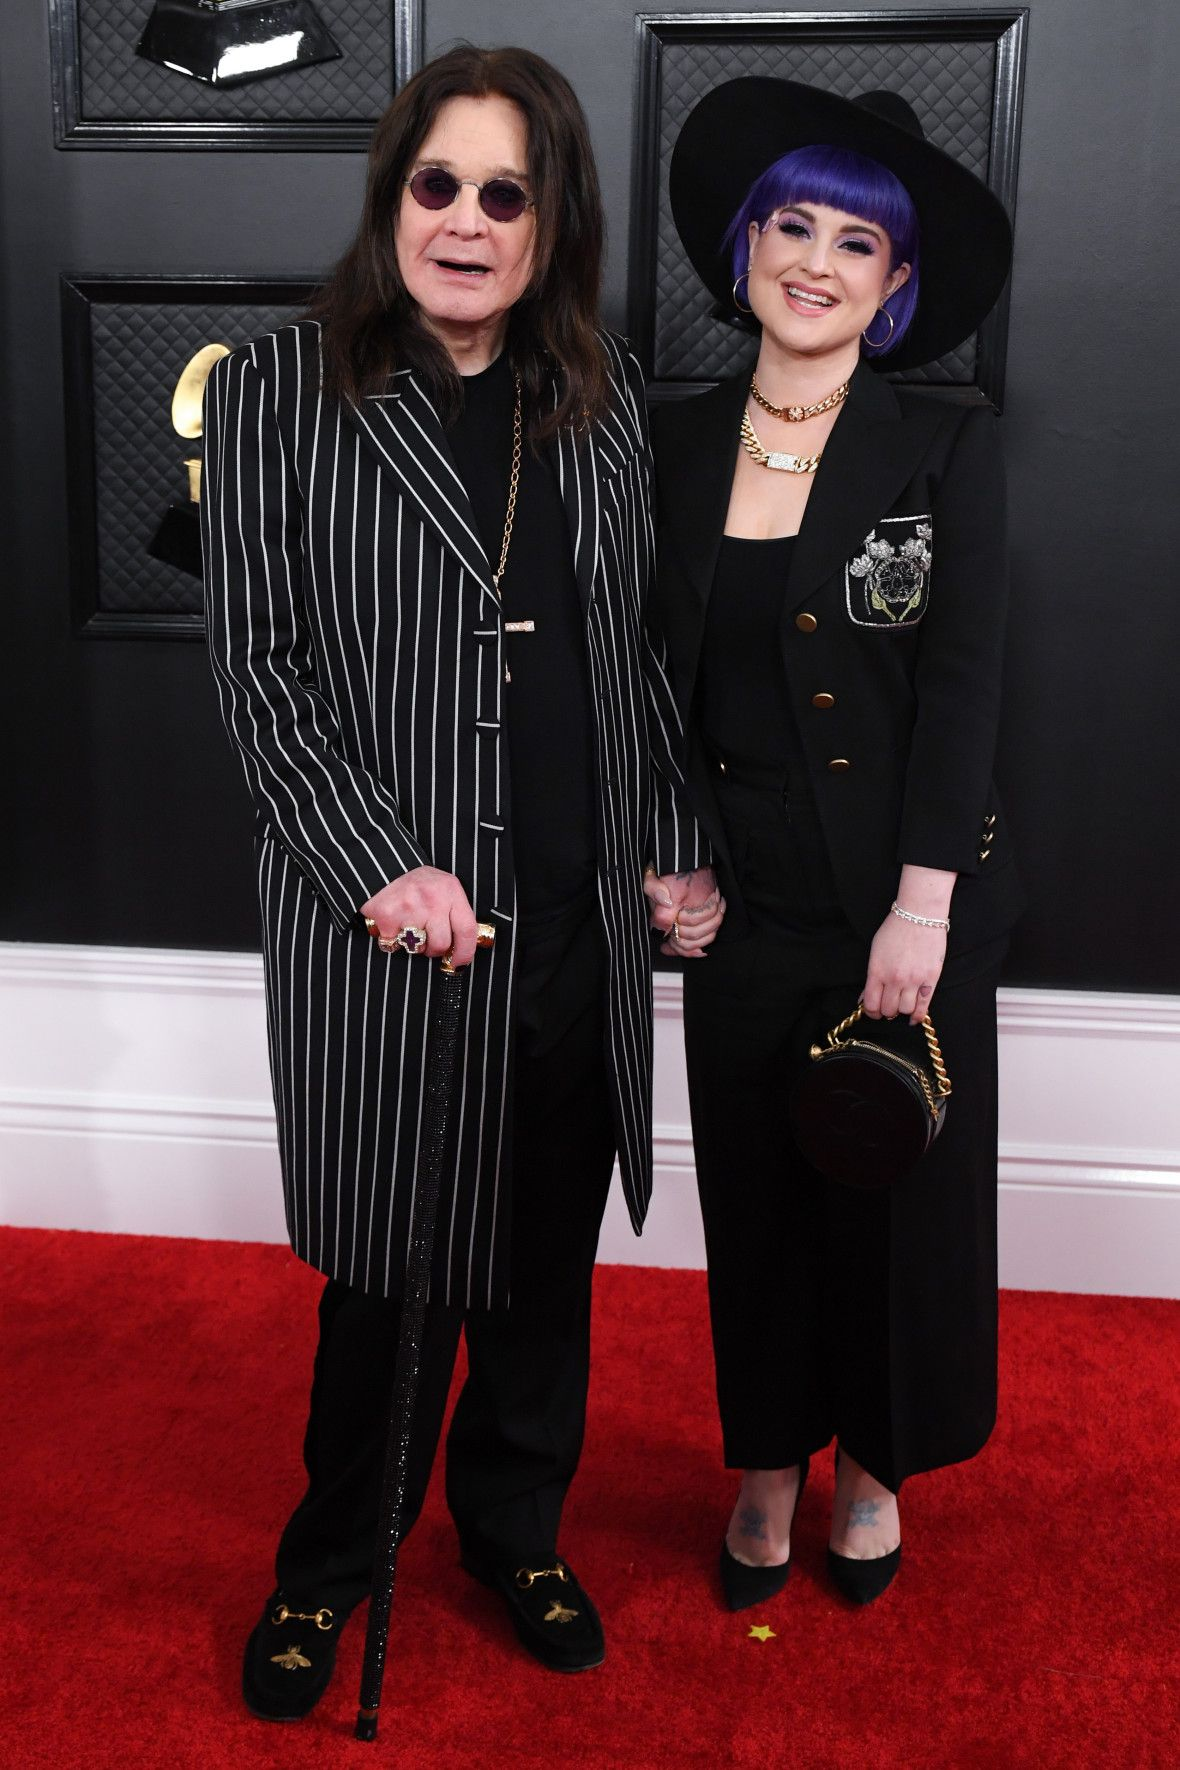 Ozzy Osbourne Looks Happy at 2020 Grammys After Parkinson